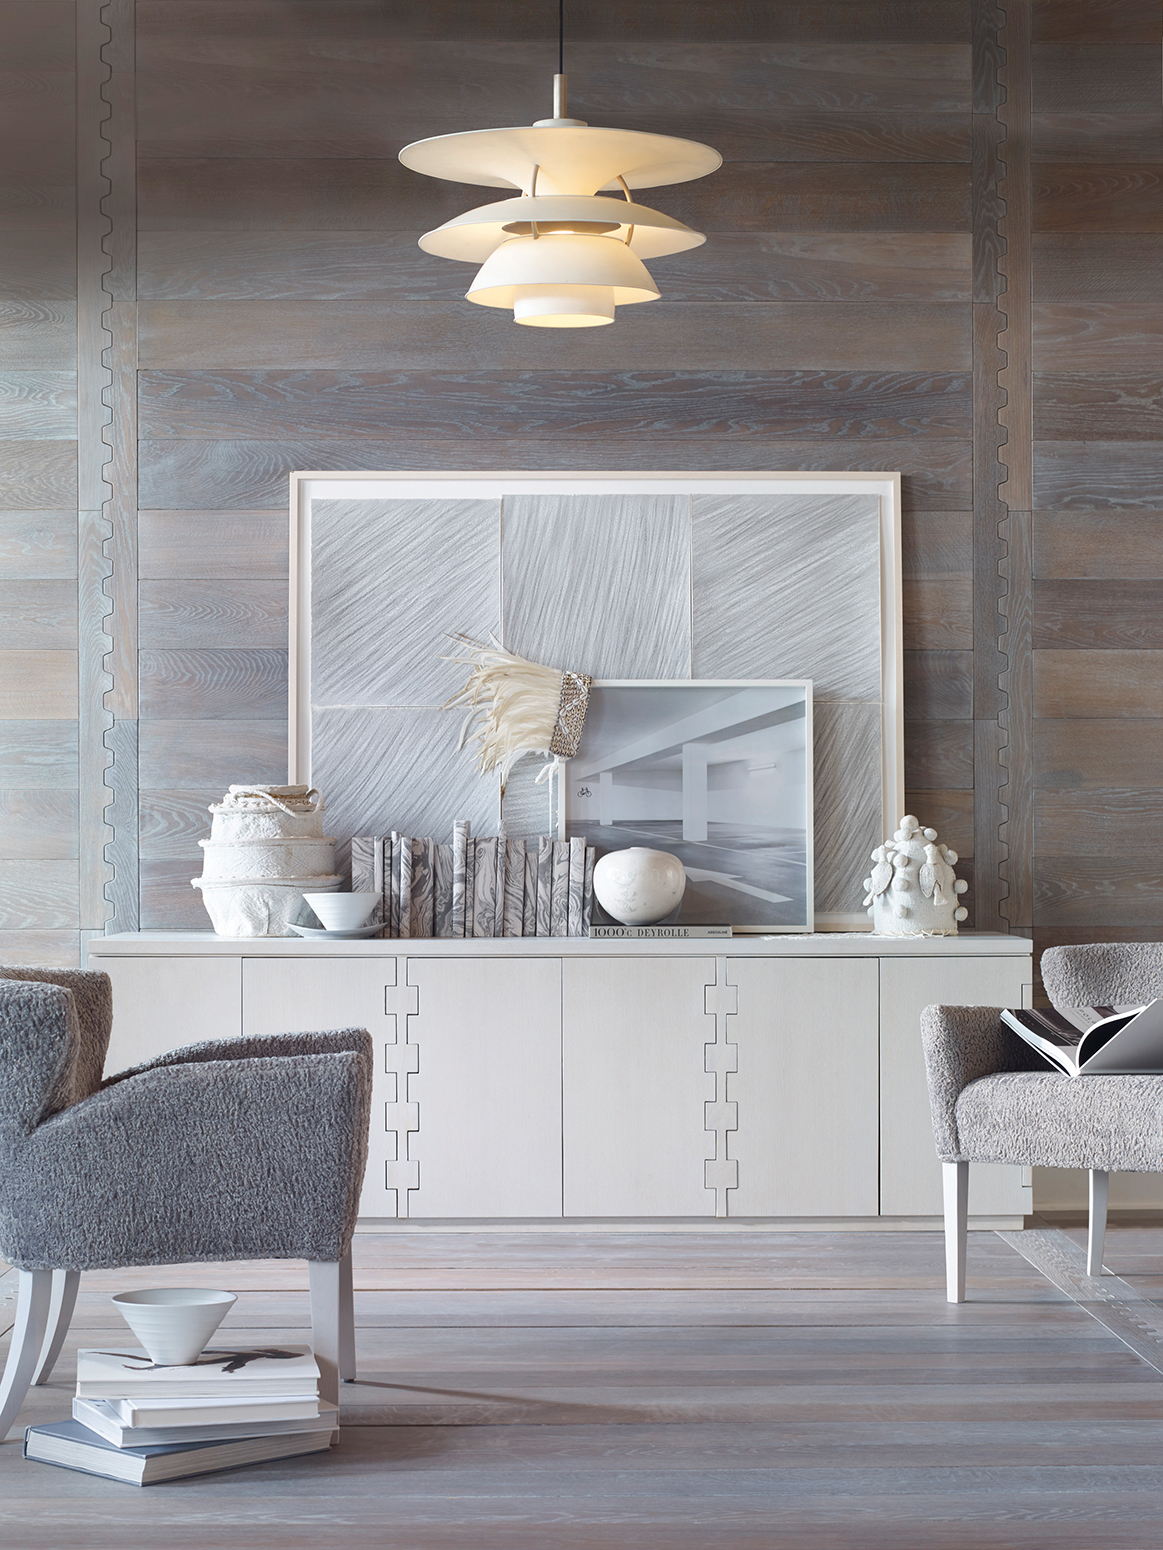 With walls, floors, upholstery, and accessories all soothing shades of neutral gray, the emphasis in this vignette is on shape and texture.